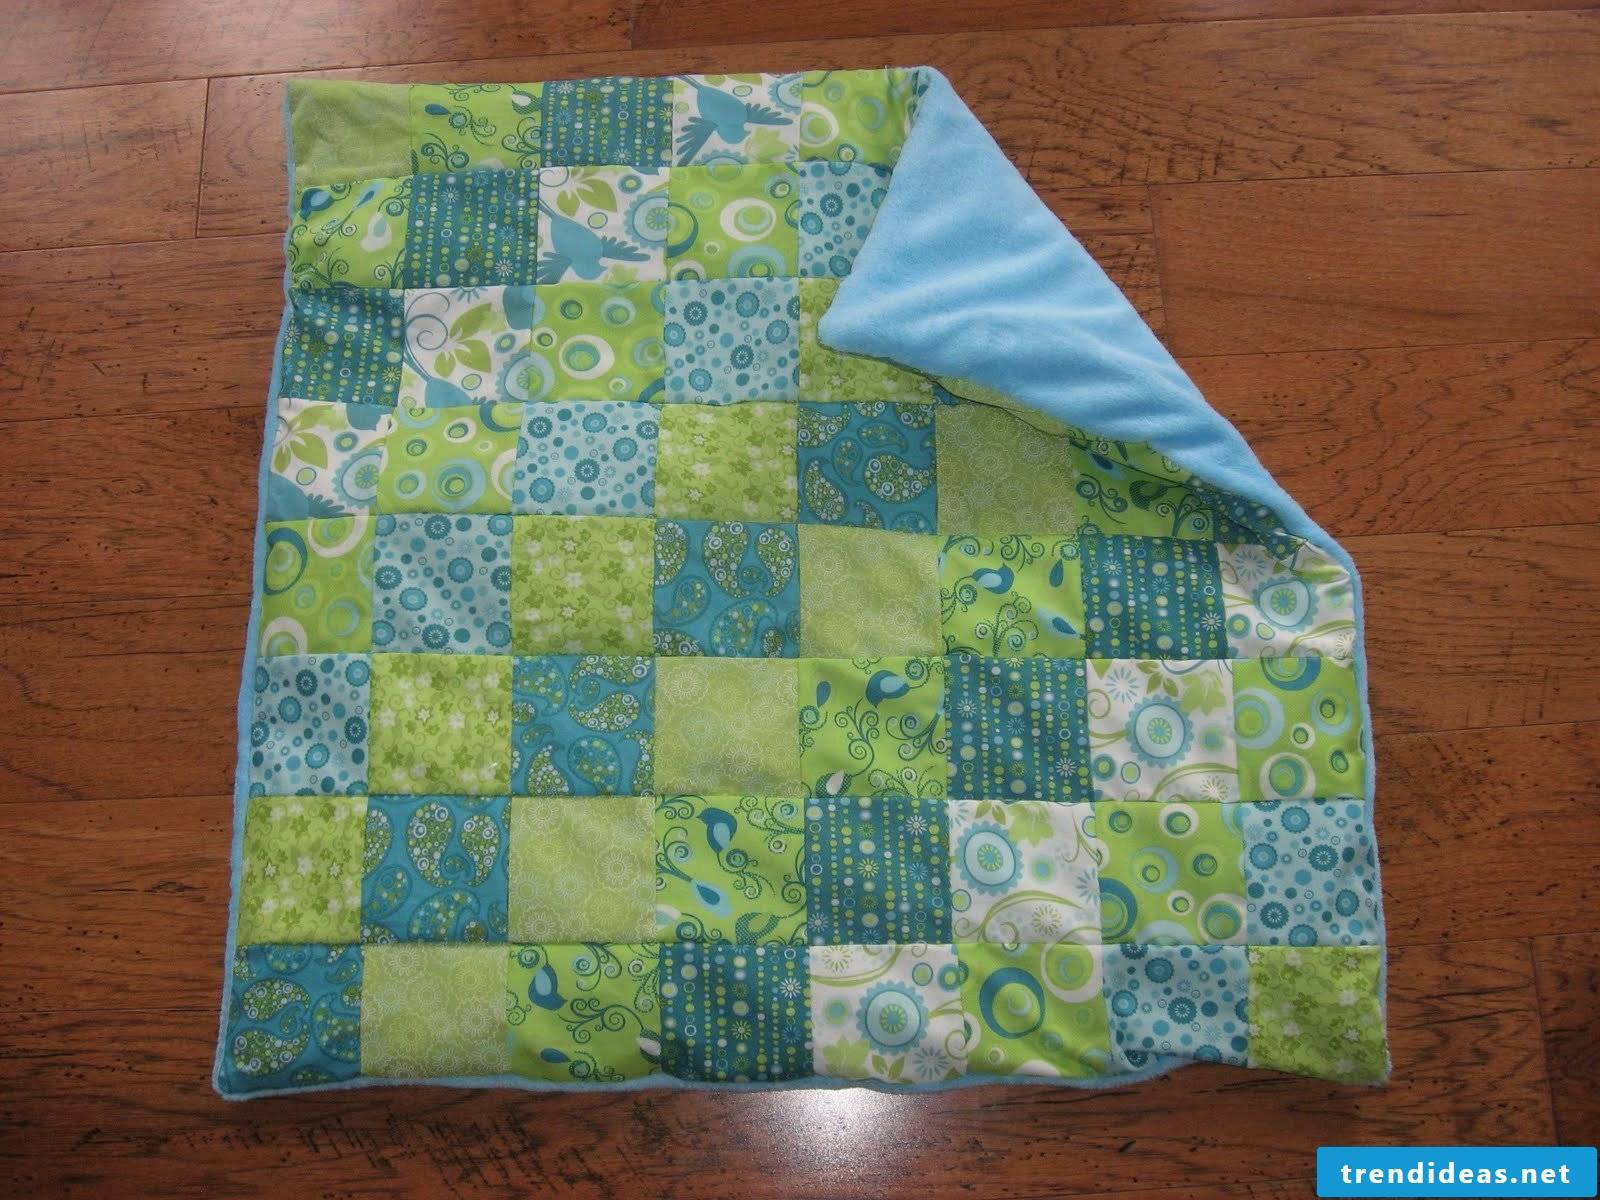 Patschwork baby blanket in green and blue